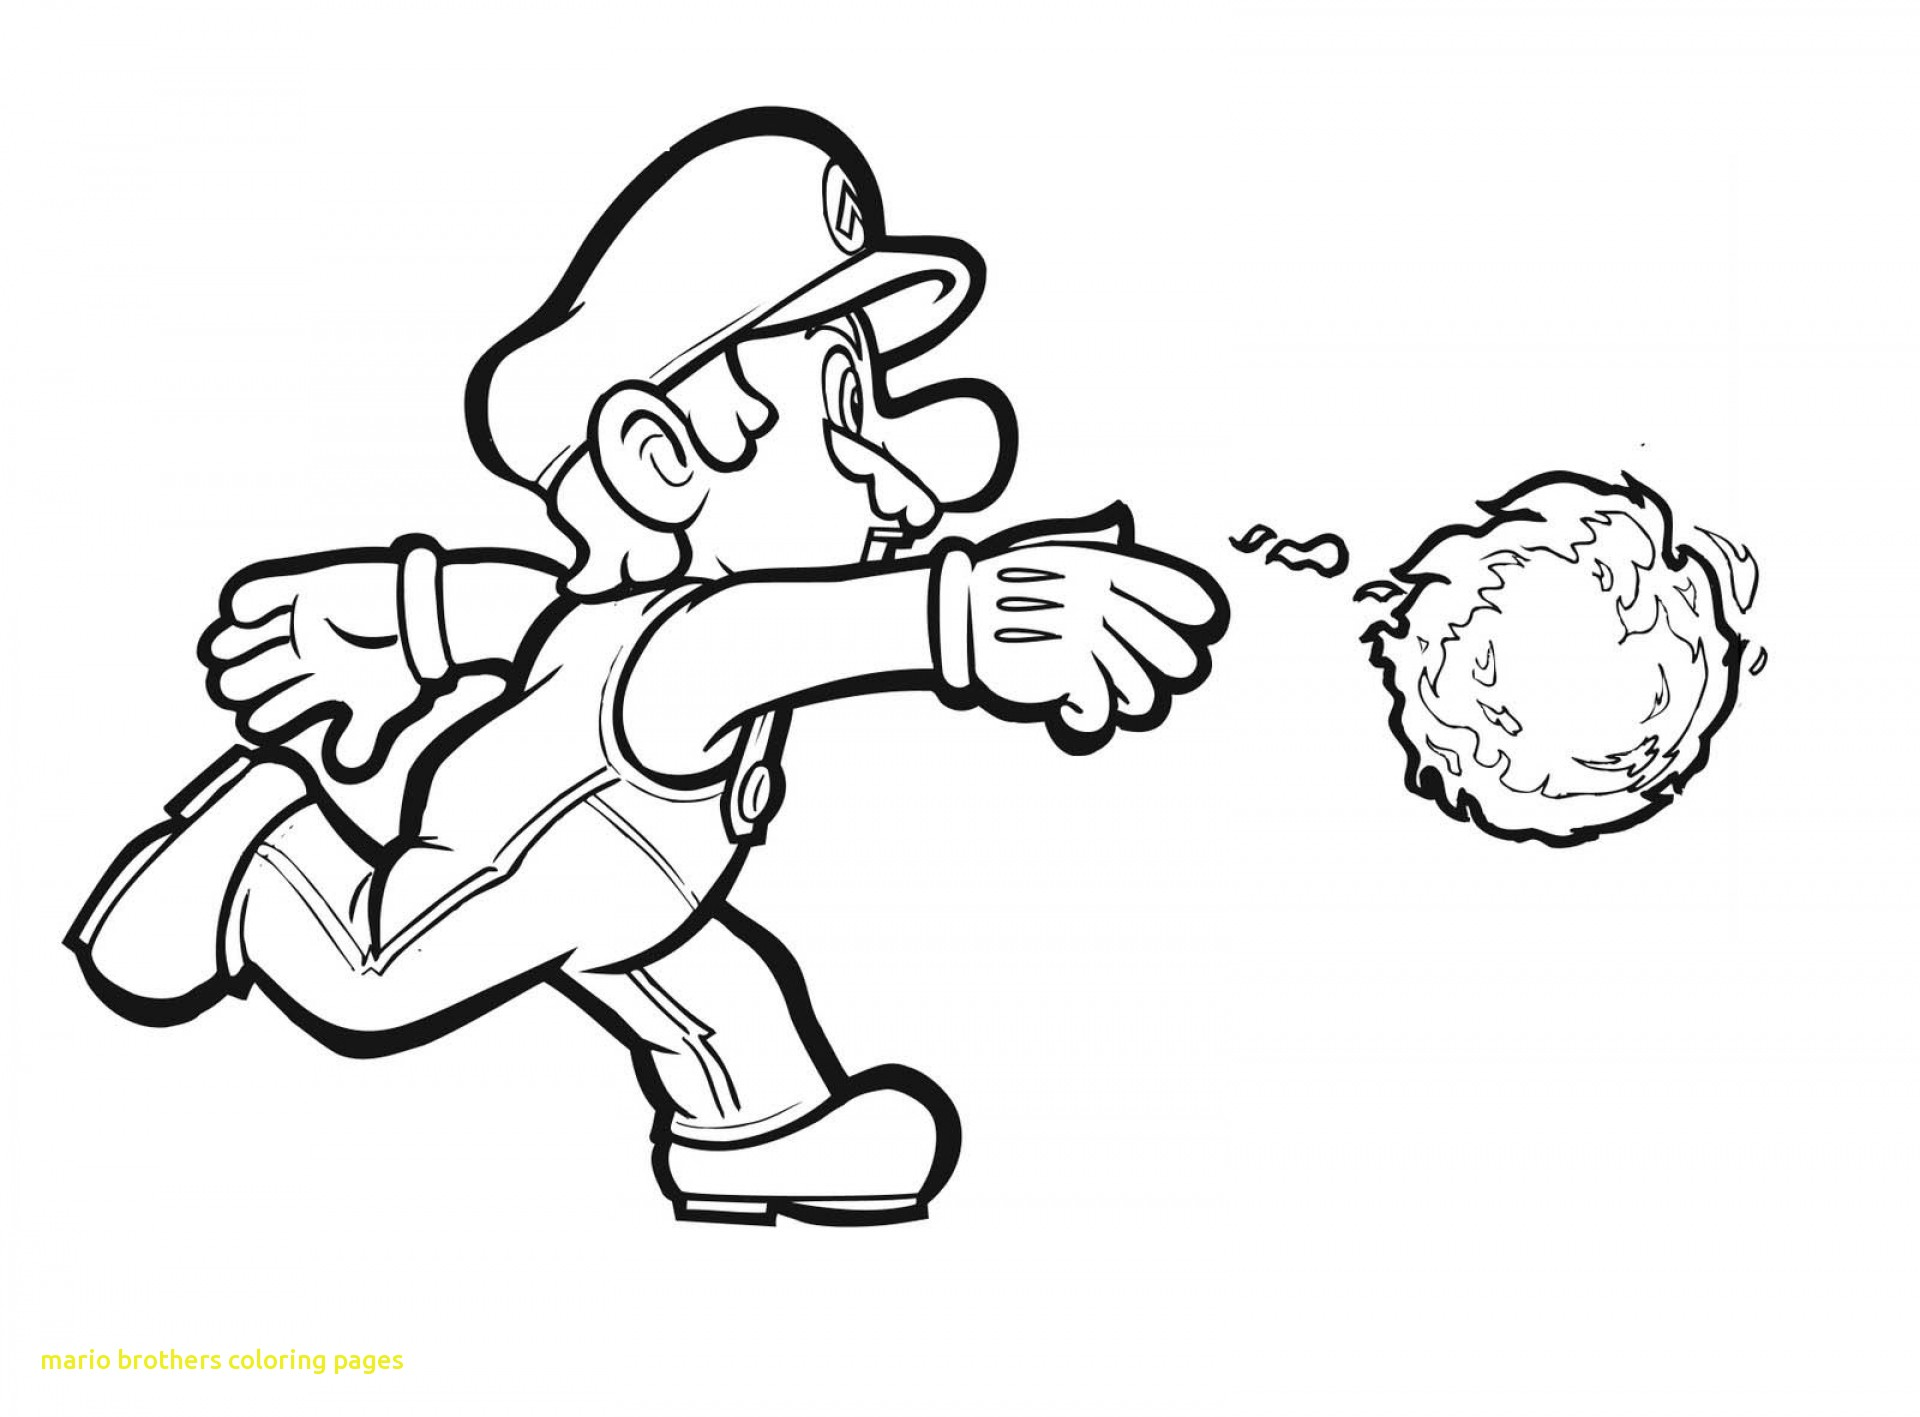 1920x1417 Mario Brothers Coloring Pages With Super Mario Brothers